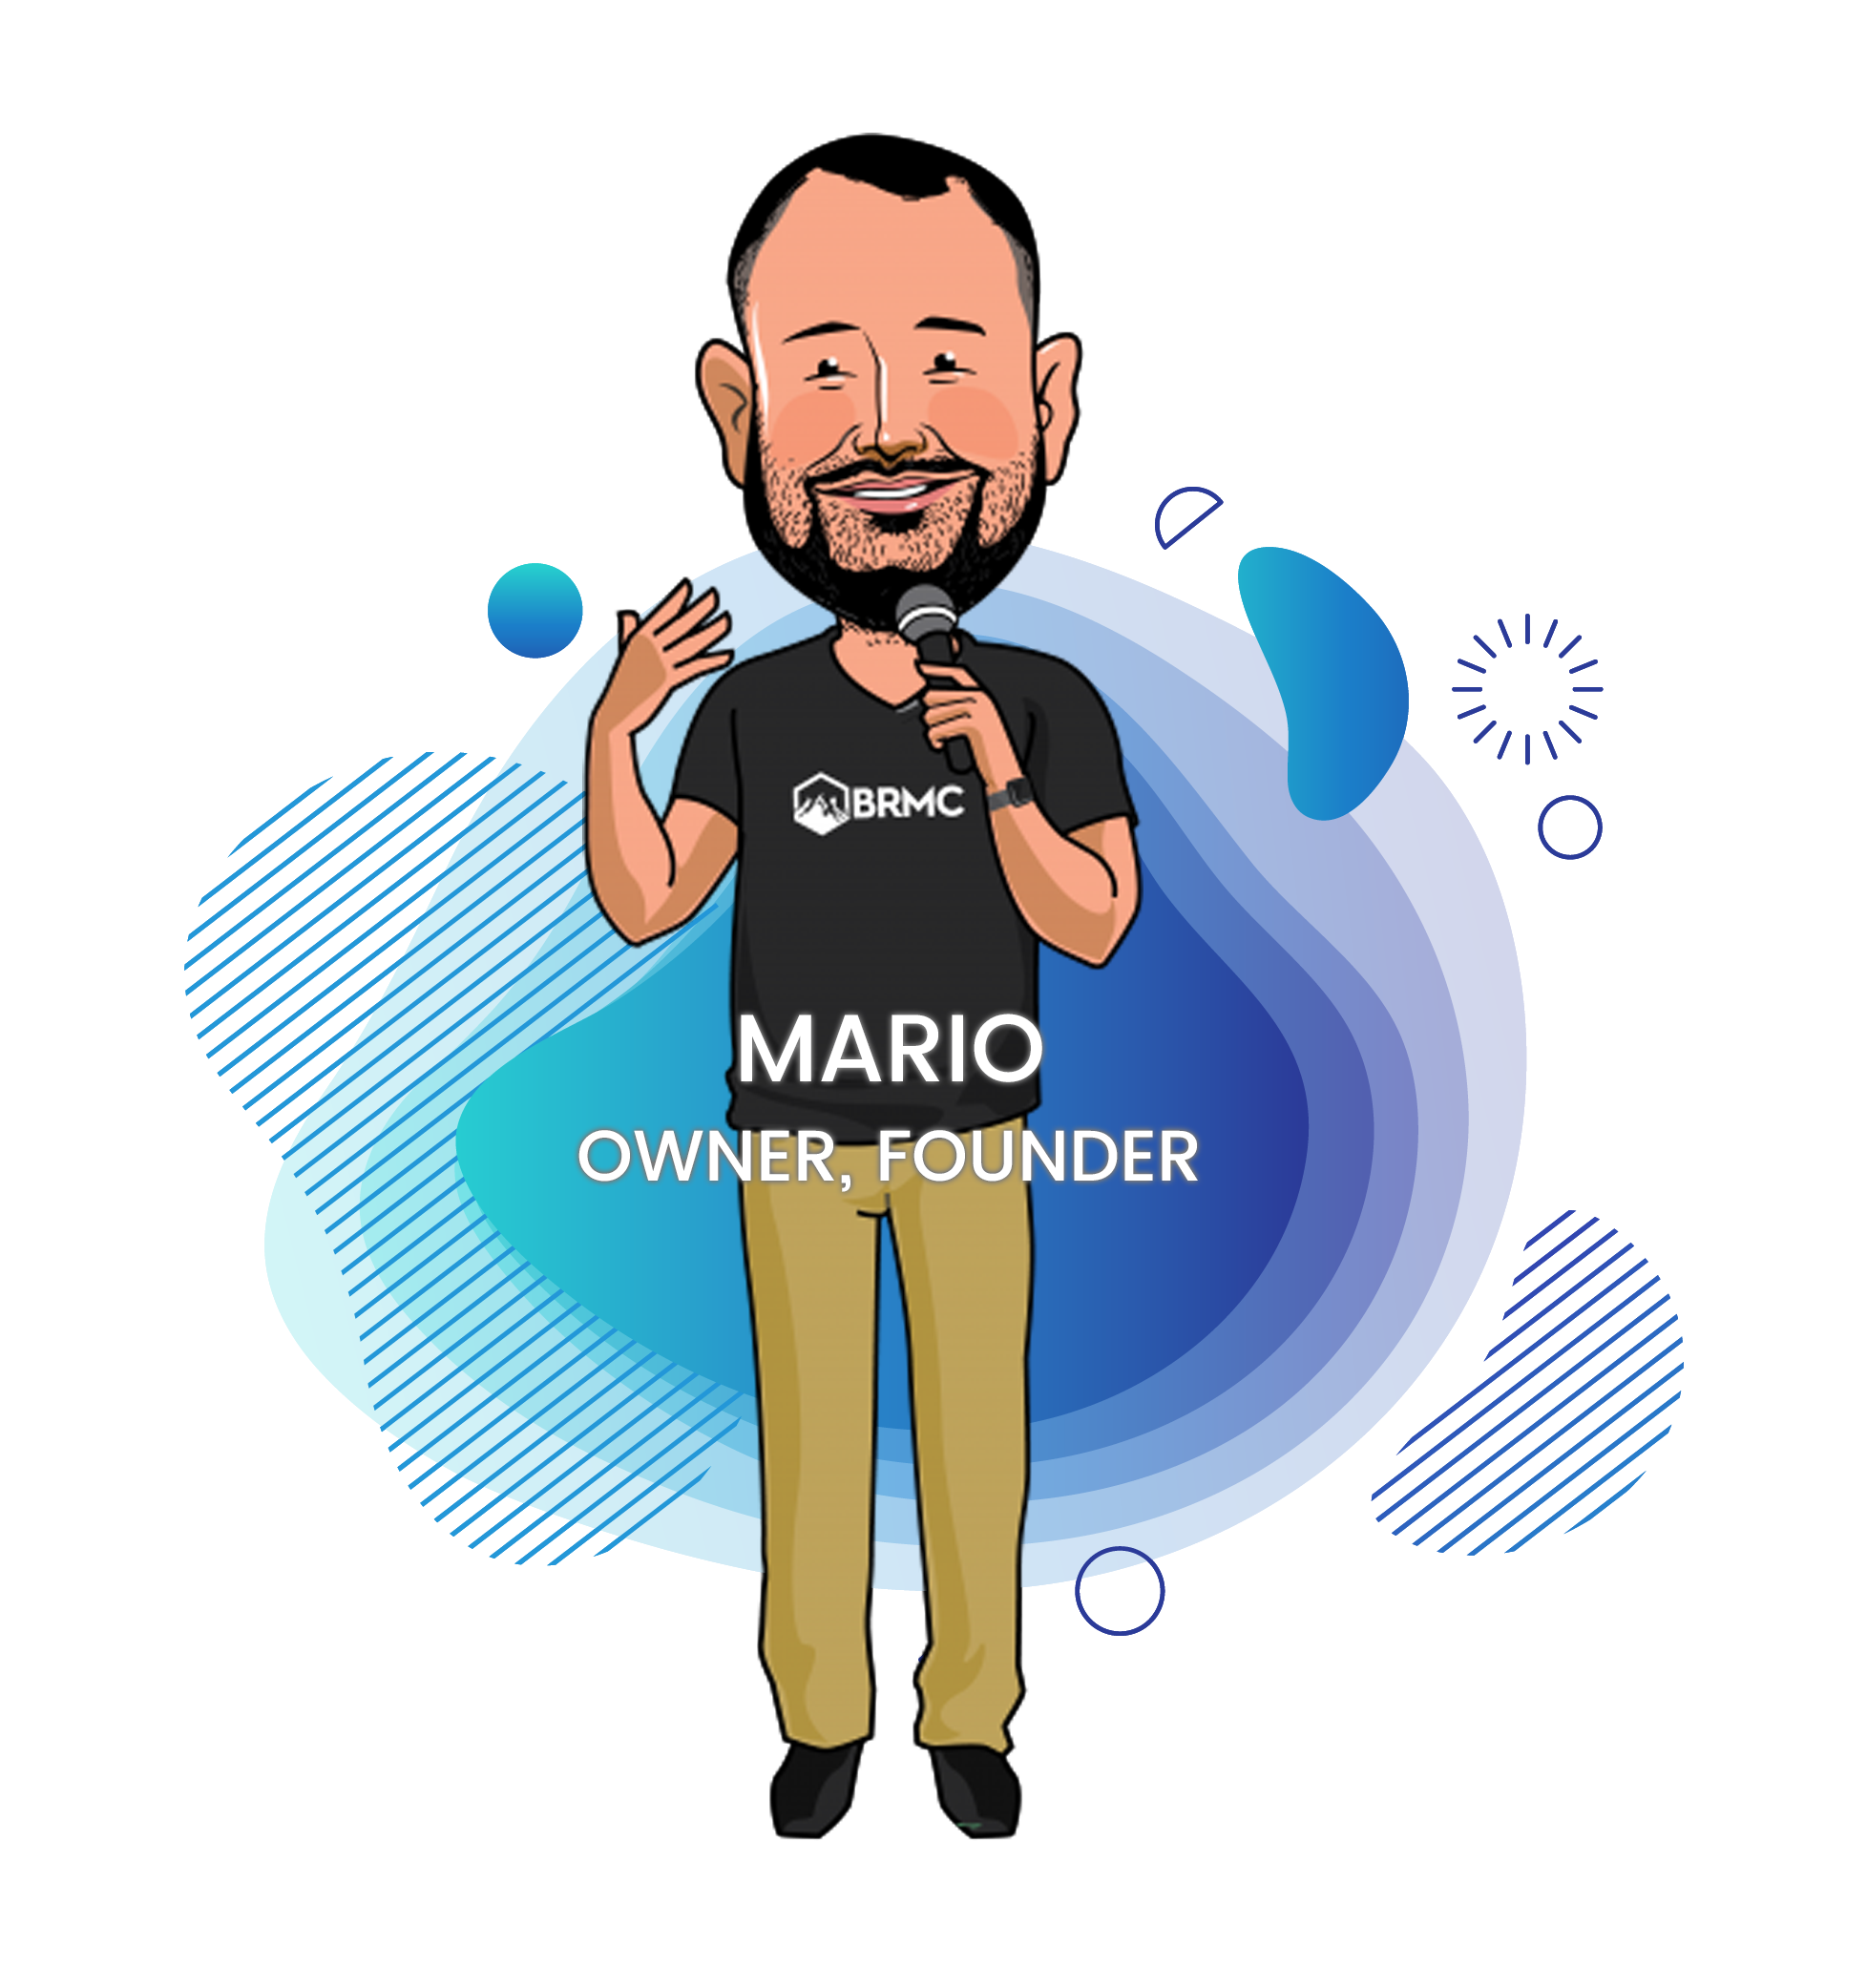 Mario, Owner, Founder